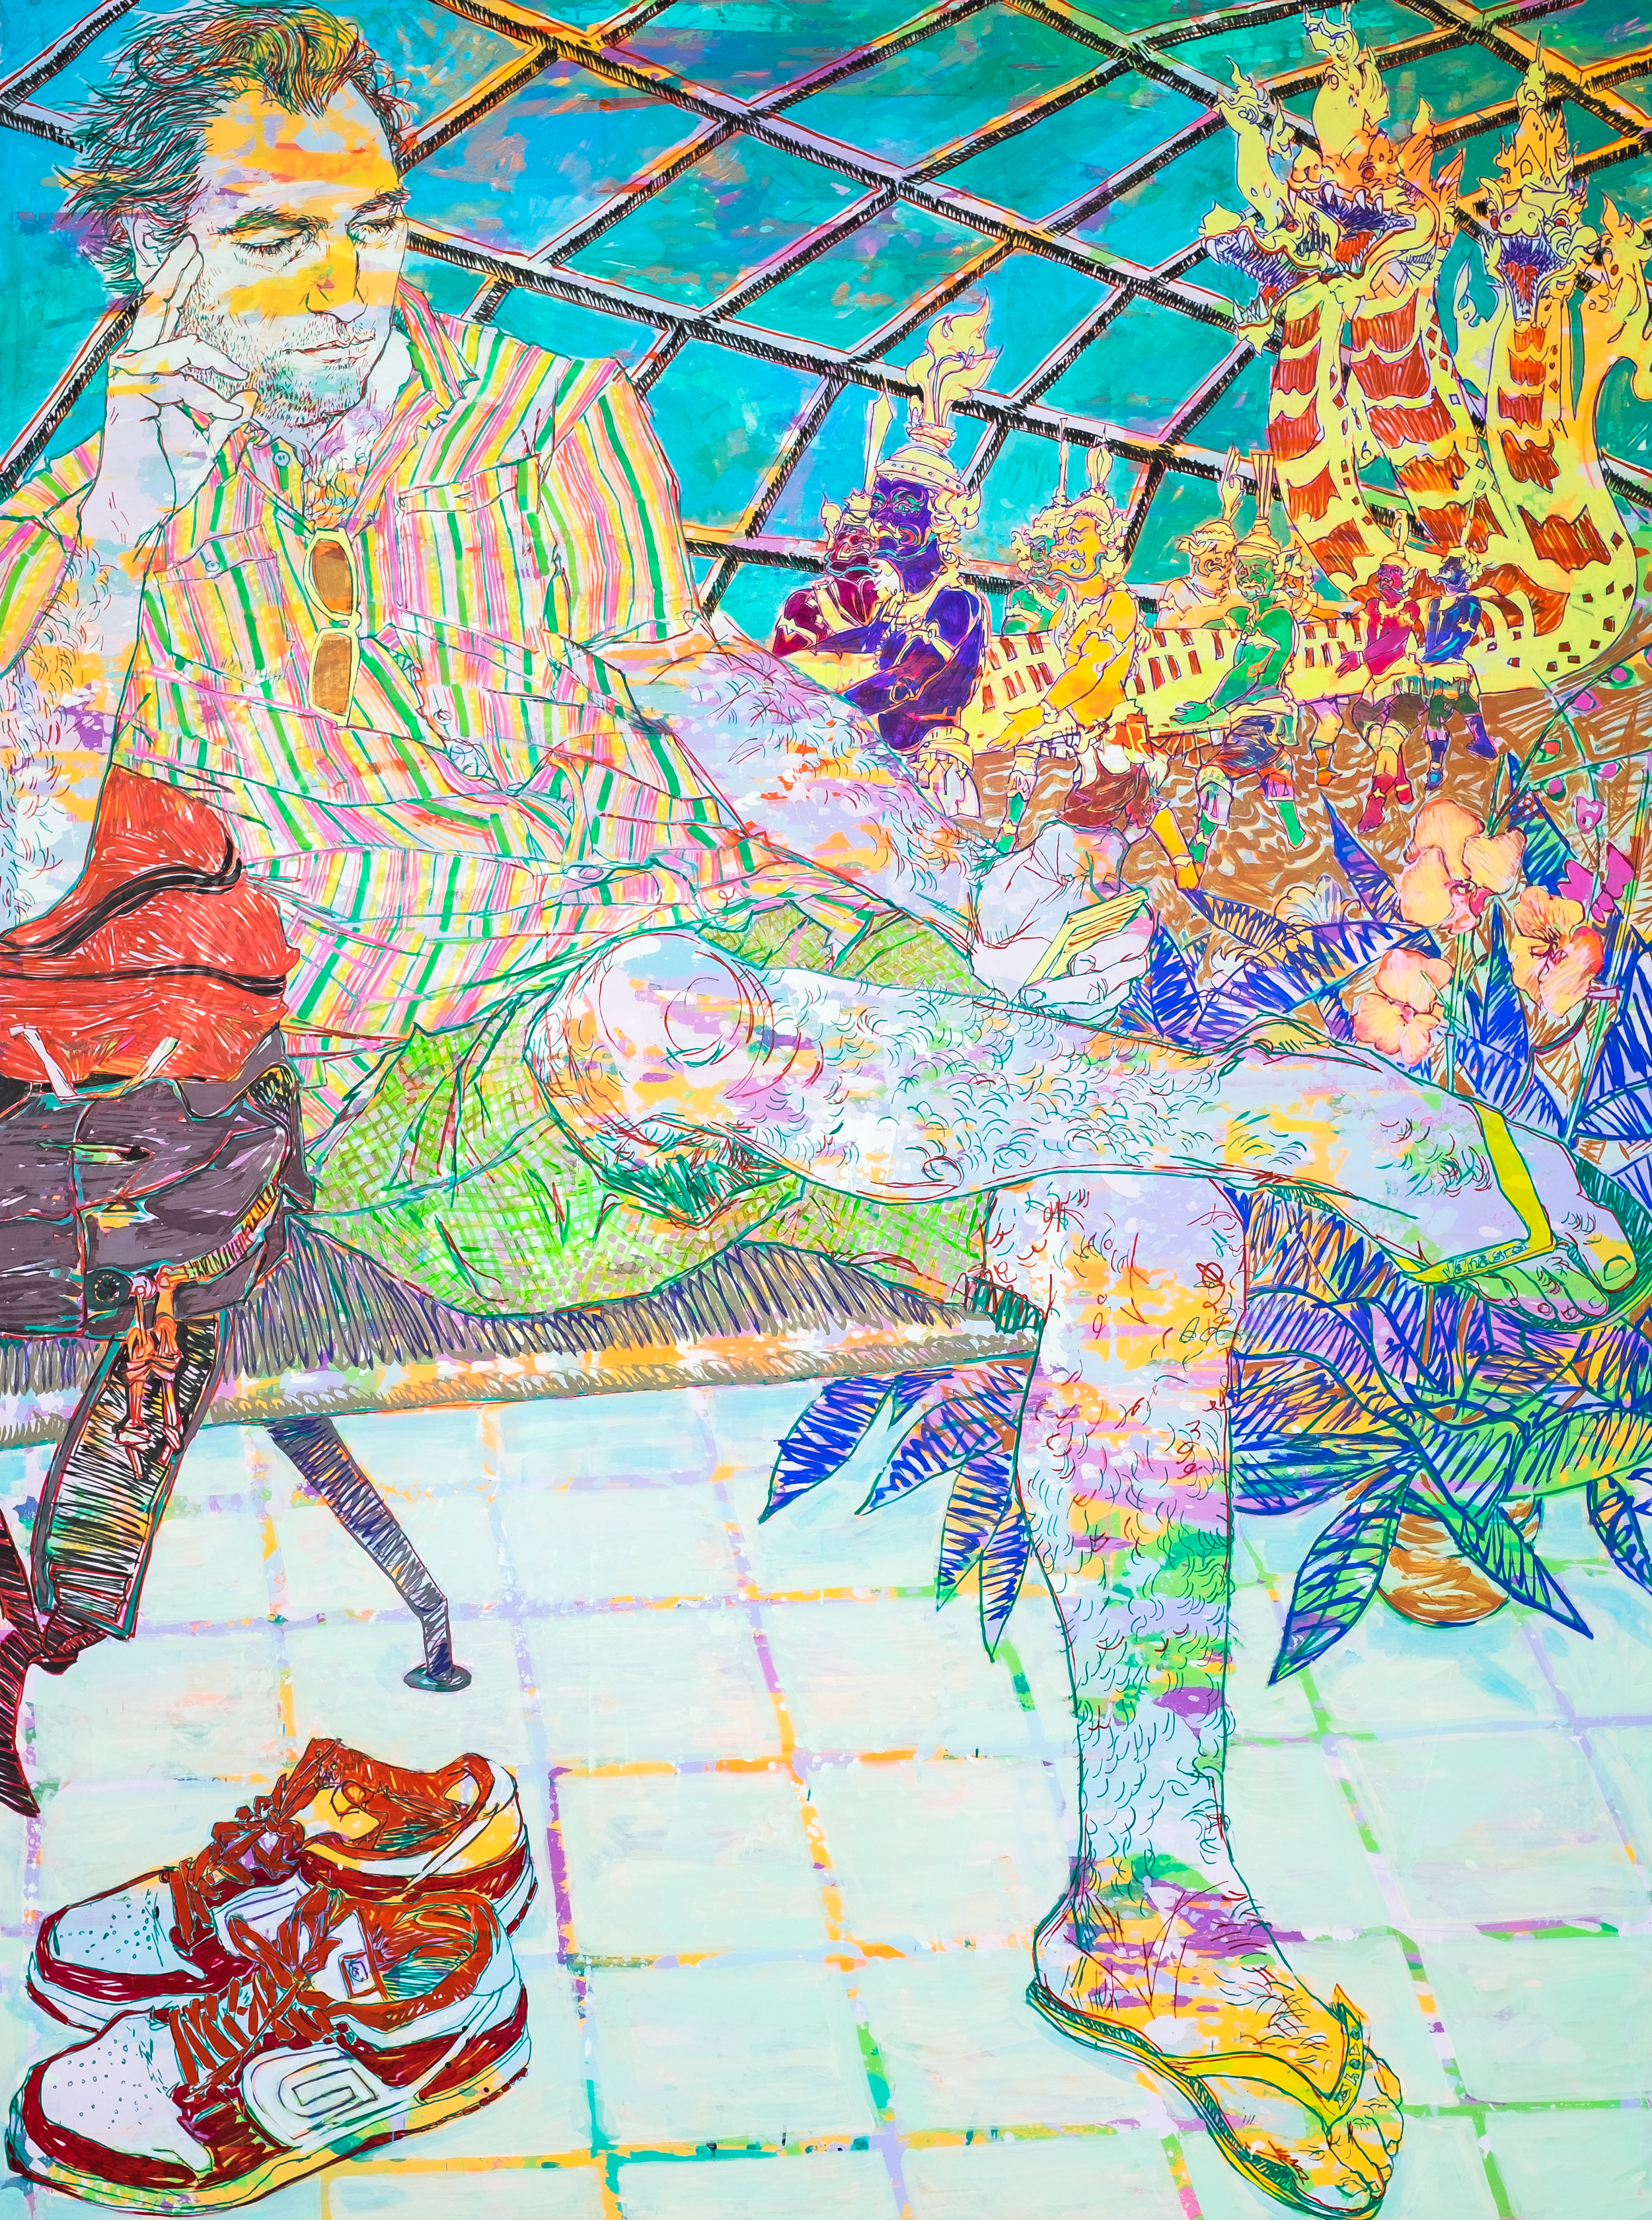 Hope    Gangloff,  Search at Suvarnabhumi Airport  , 2016,  Acrylic on canvas,  96 x 72 in.   Images courtesy of Susan Inglett Gallery and Richard Heller Gallery.  Photography by: Donald Stahl